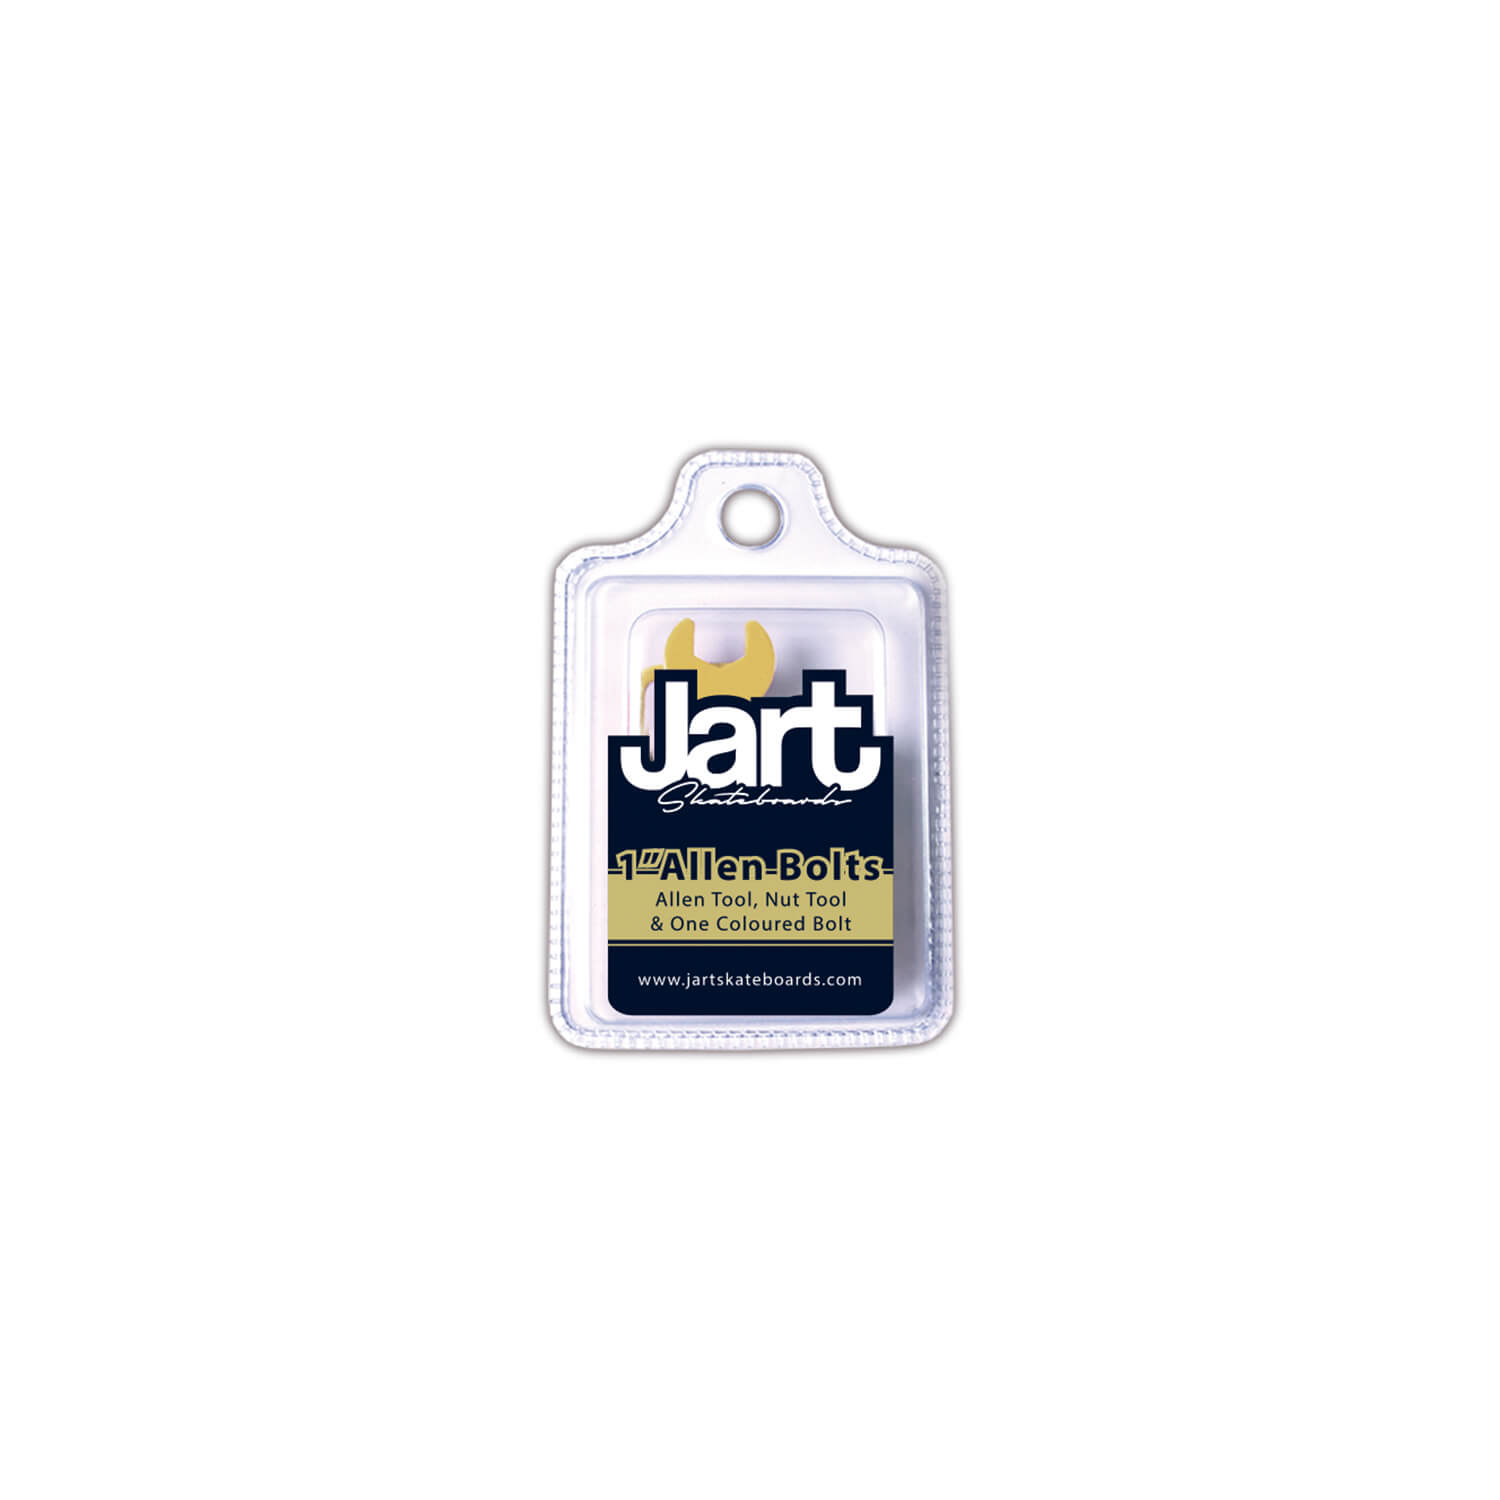 "Jart Bolts & Nuts 1"" Allen Blister Pack"